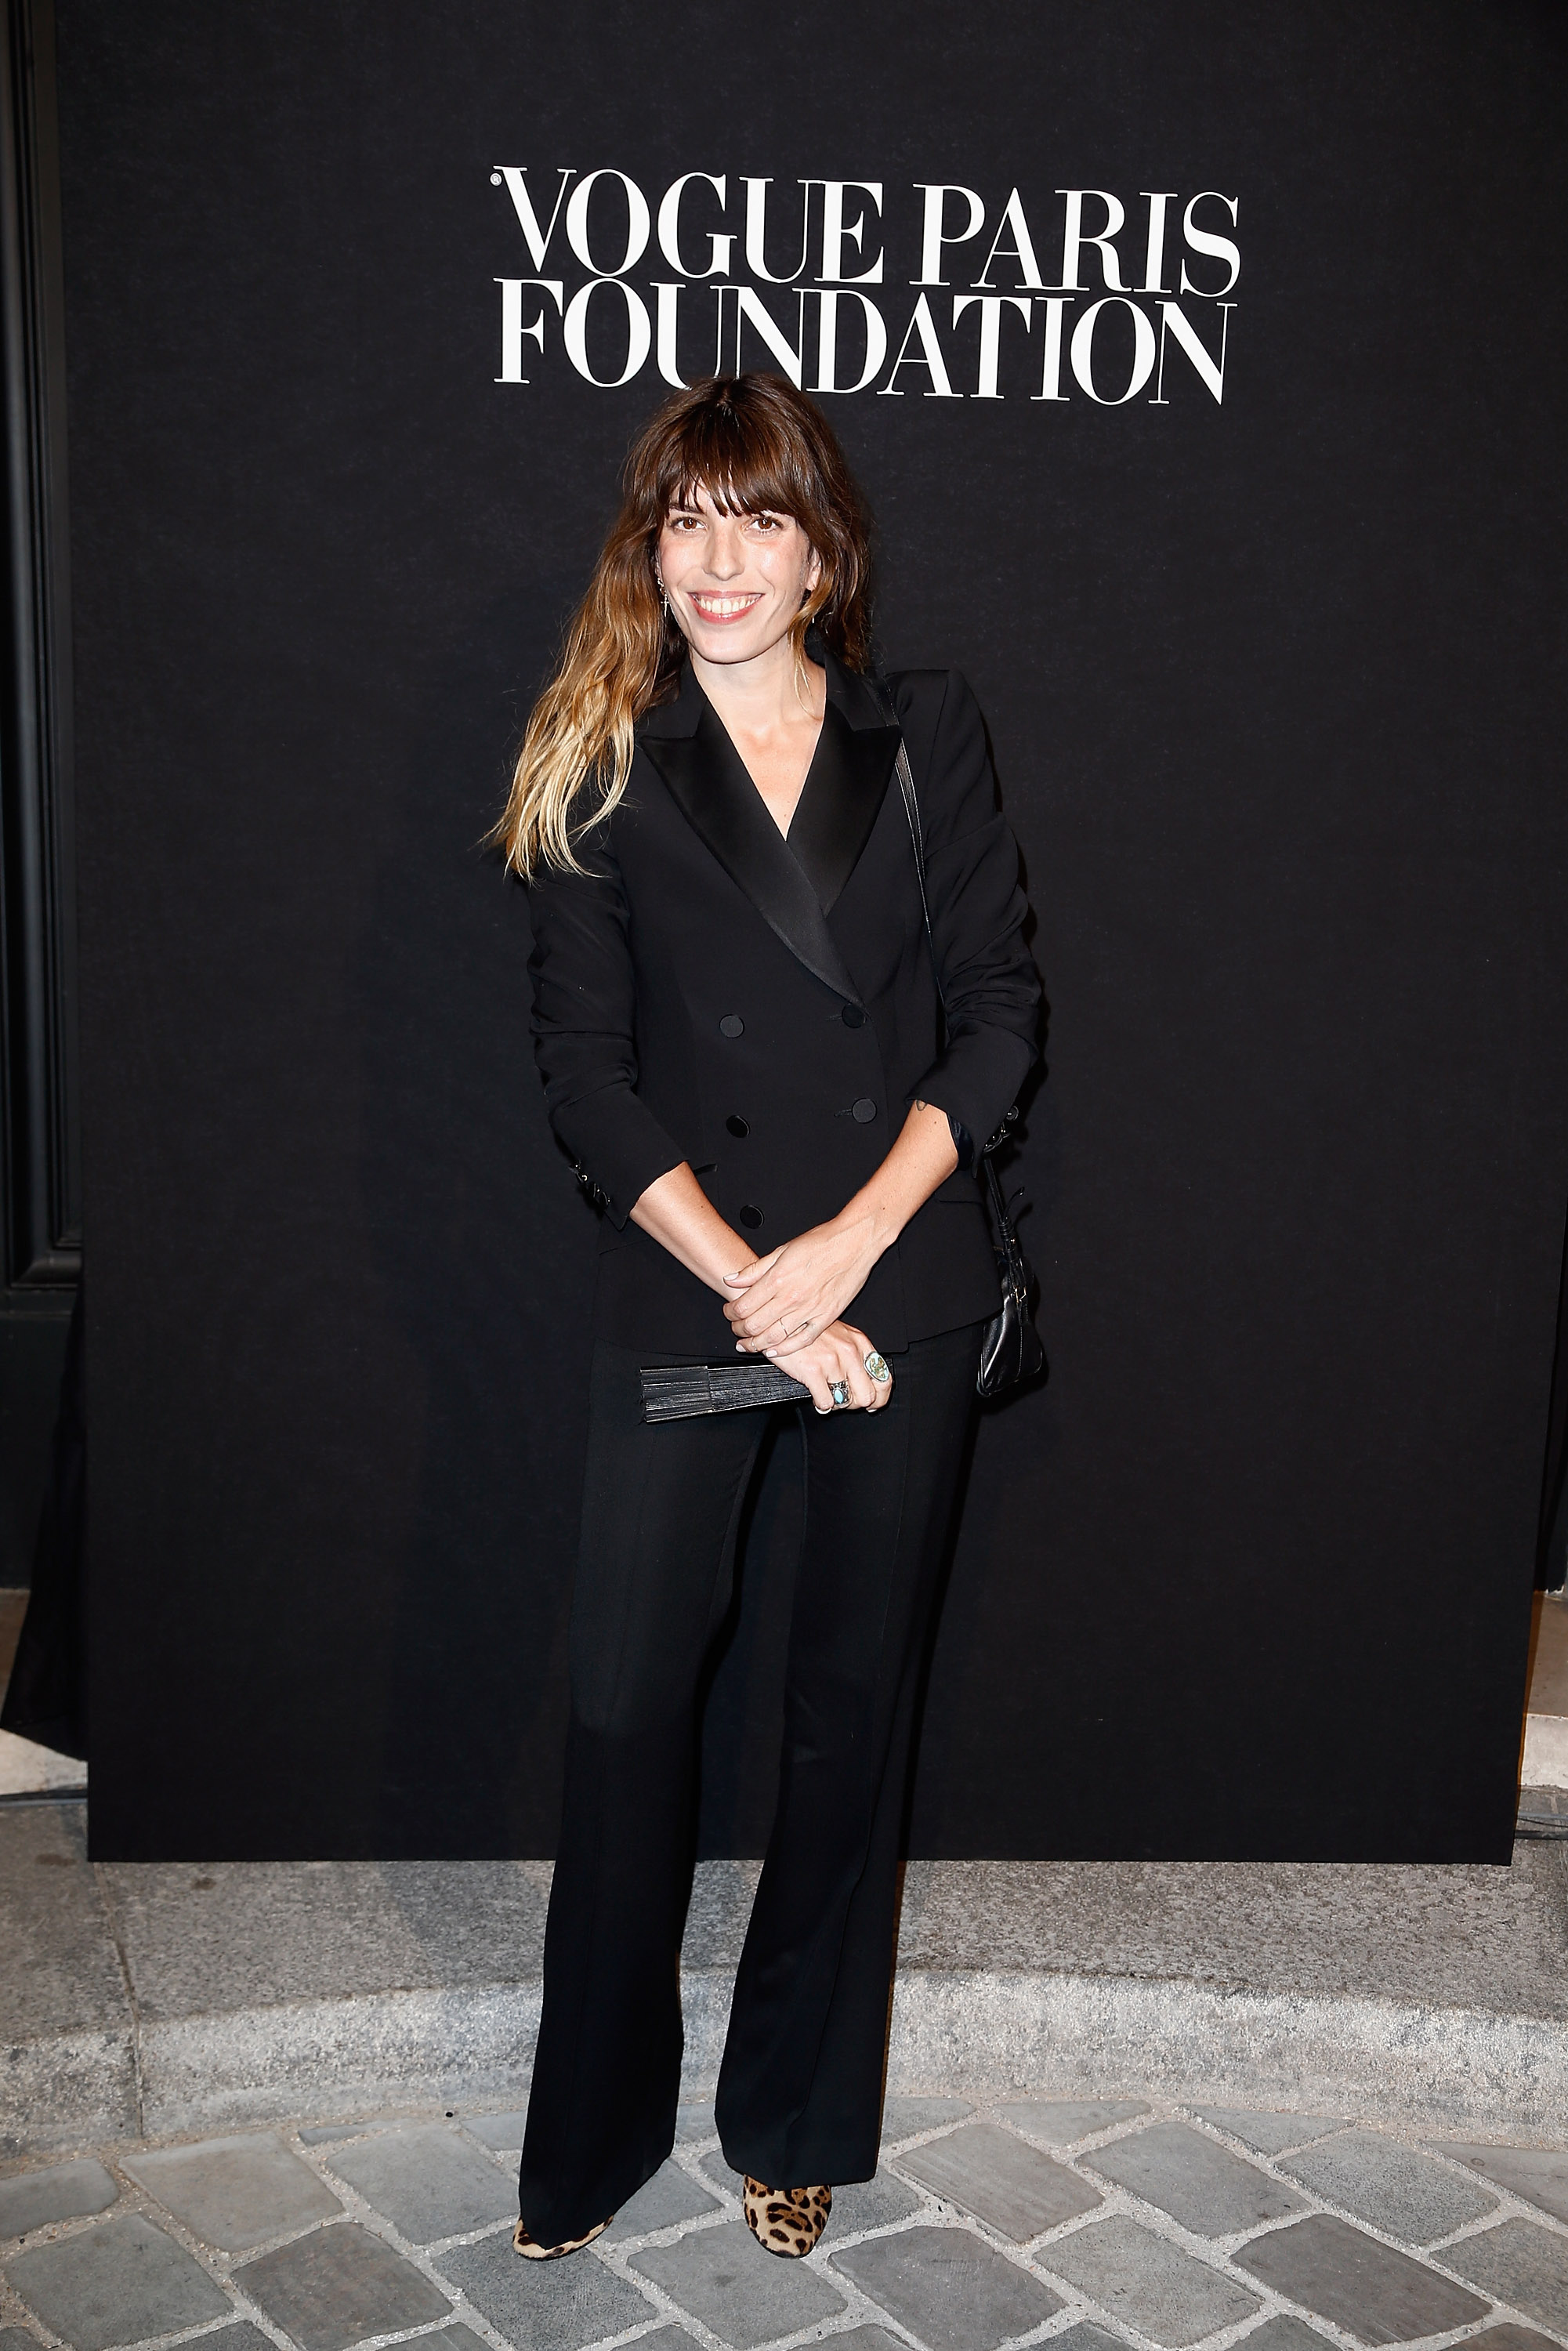 PARIS, FRANCE - JULY 06:  Lou Doillon attends the Vogue Paris Foundation Gala at Palais Galliera on July 6, 2015 in Paris, France.  (Photo by Julien Hekimian/Getty Images)